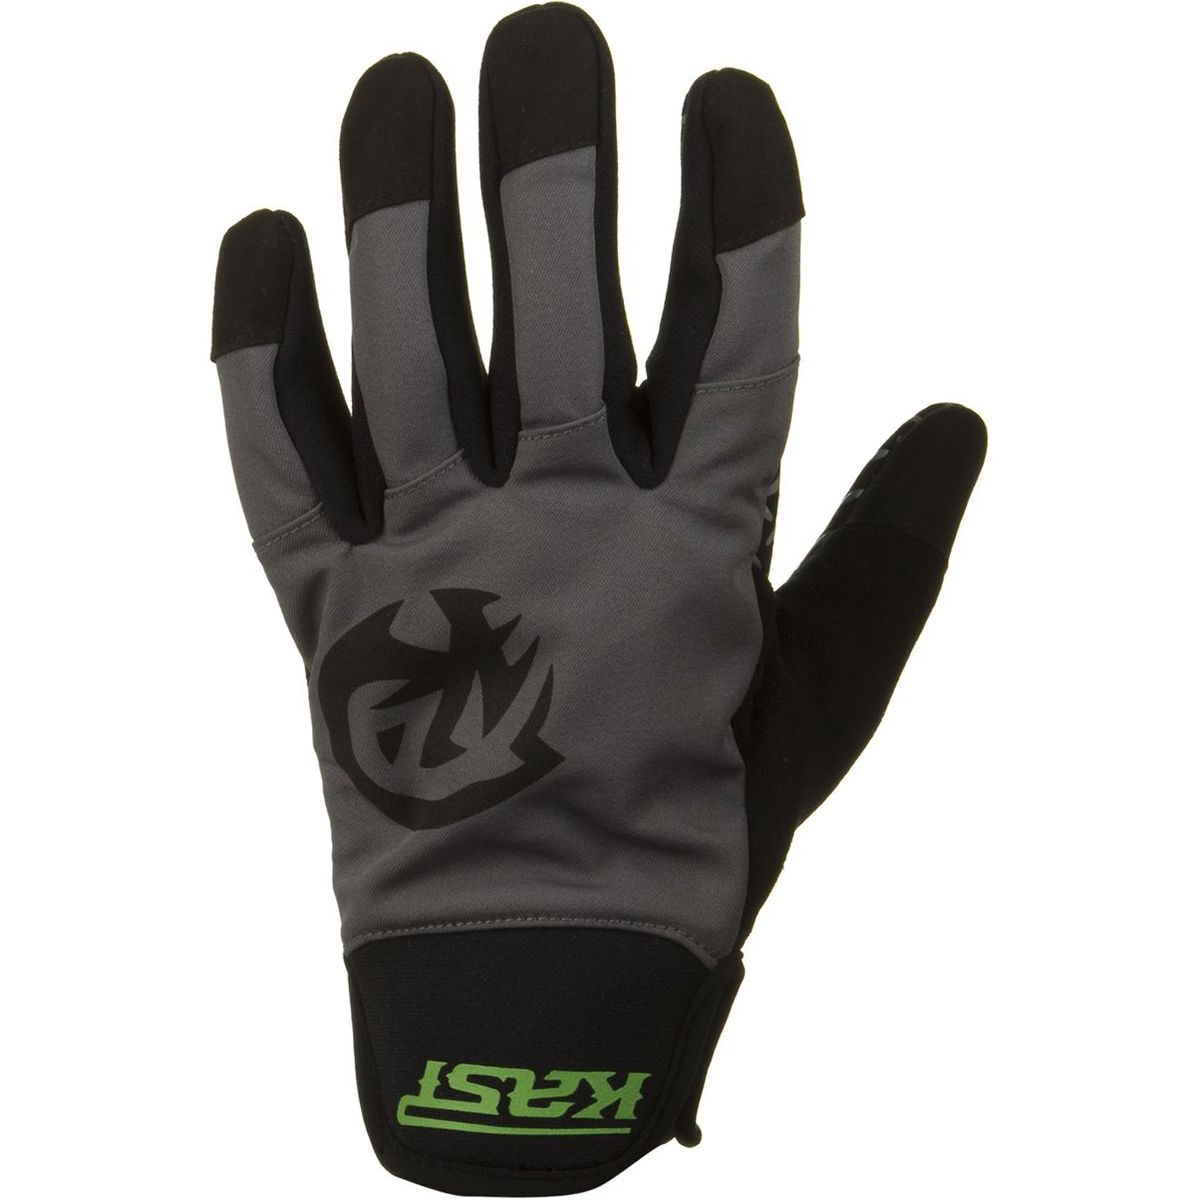 Kast Gear Raptor Glove Slate Grey Black M